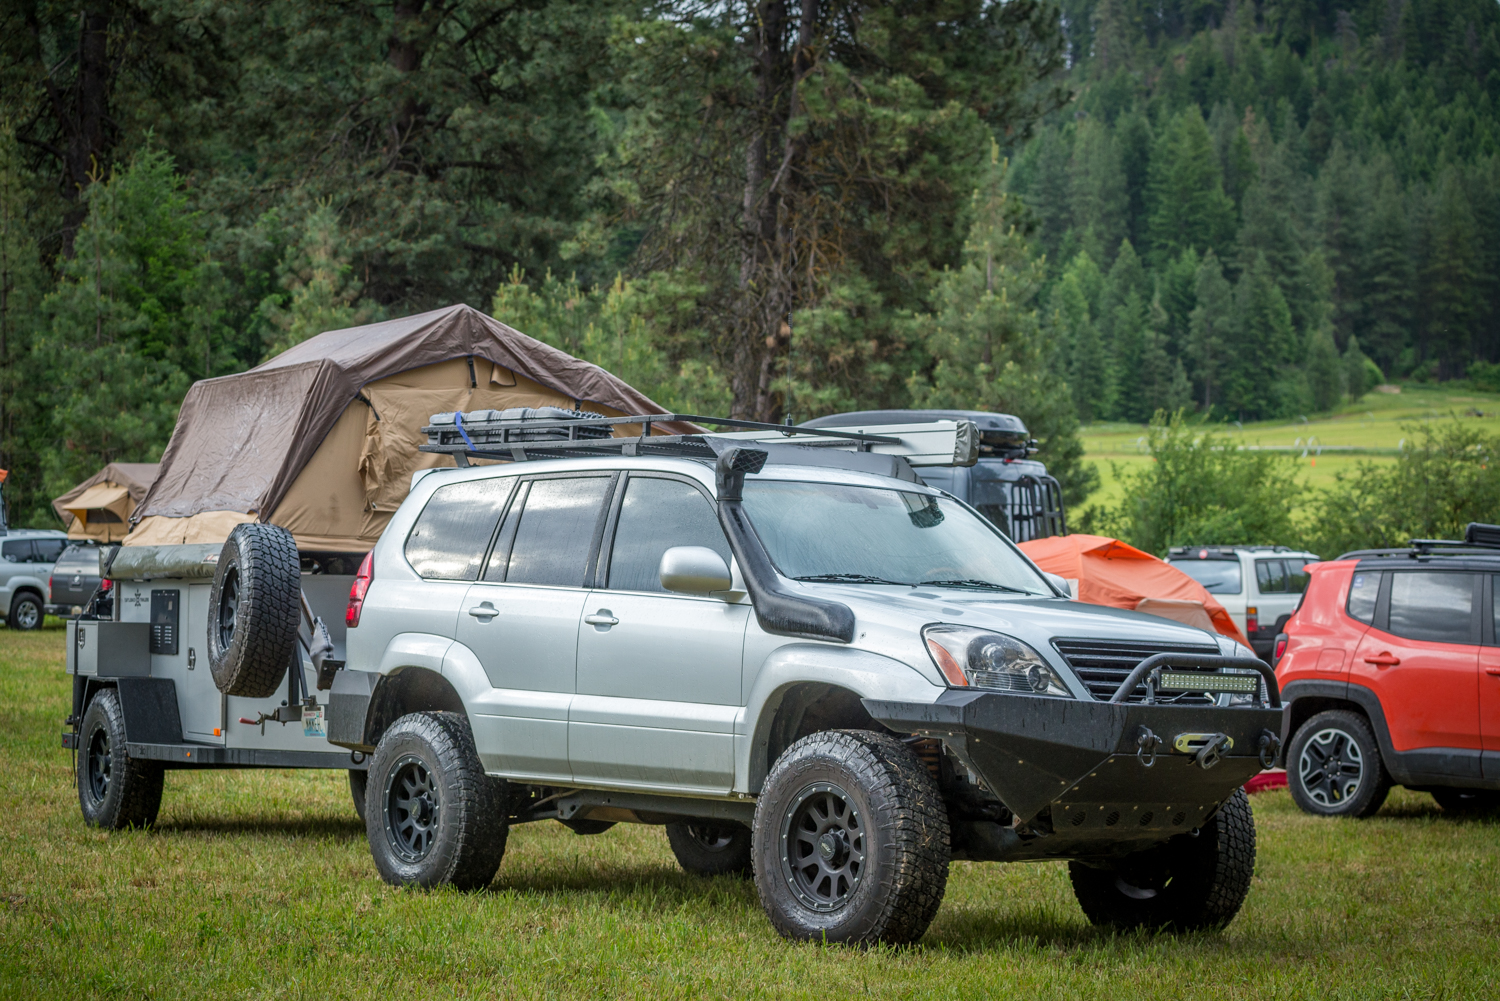 11 Awesome Adventure Vehicles Under $20,000 | GearJunkie